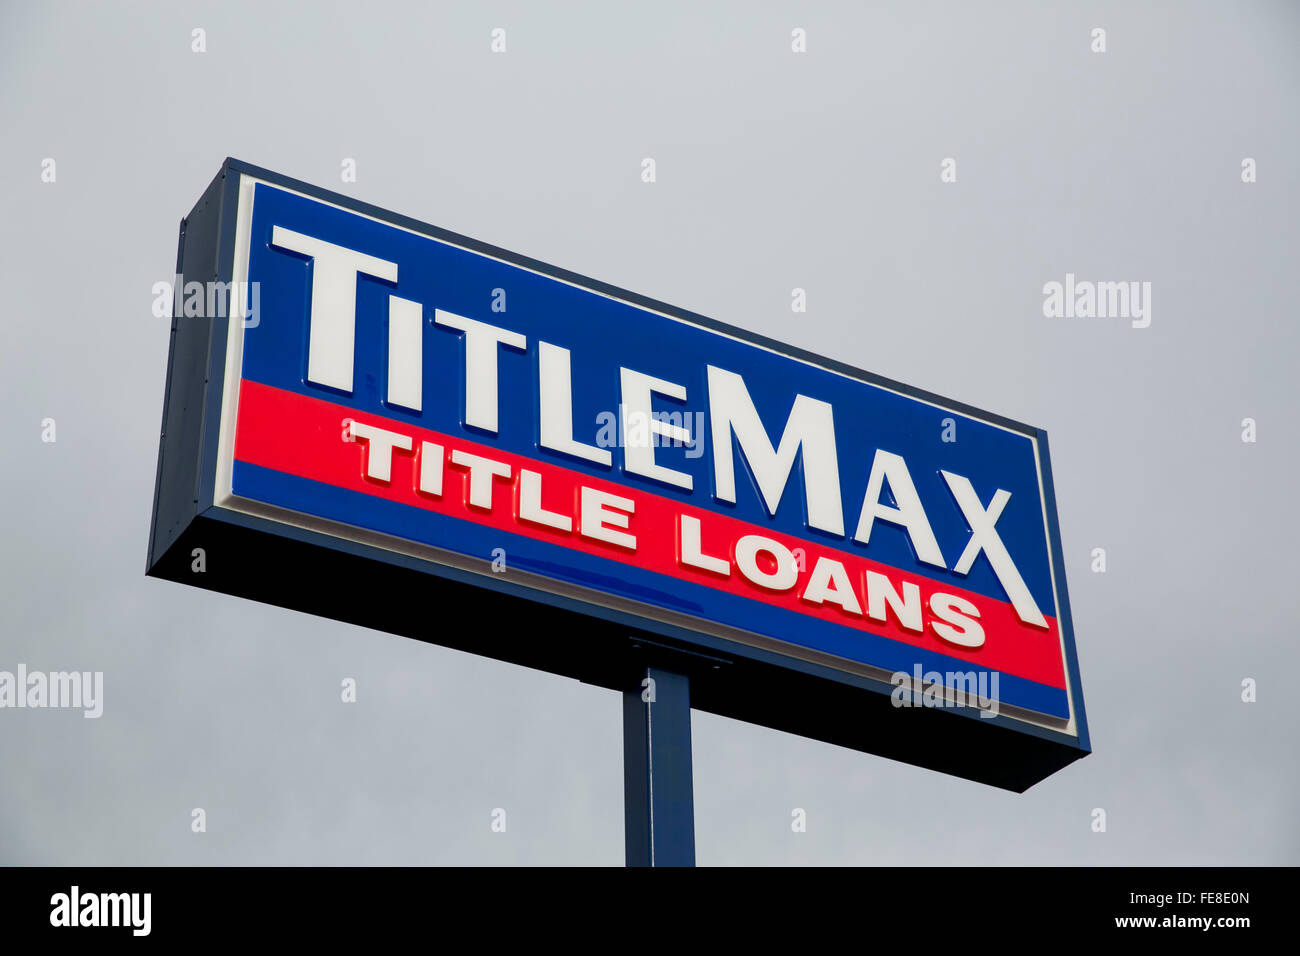 A logo sign outside of a TitleMax car title loan office in Tysons, Virginia on January 1, 2016. - Stock Image